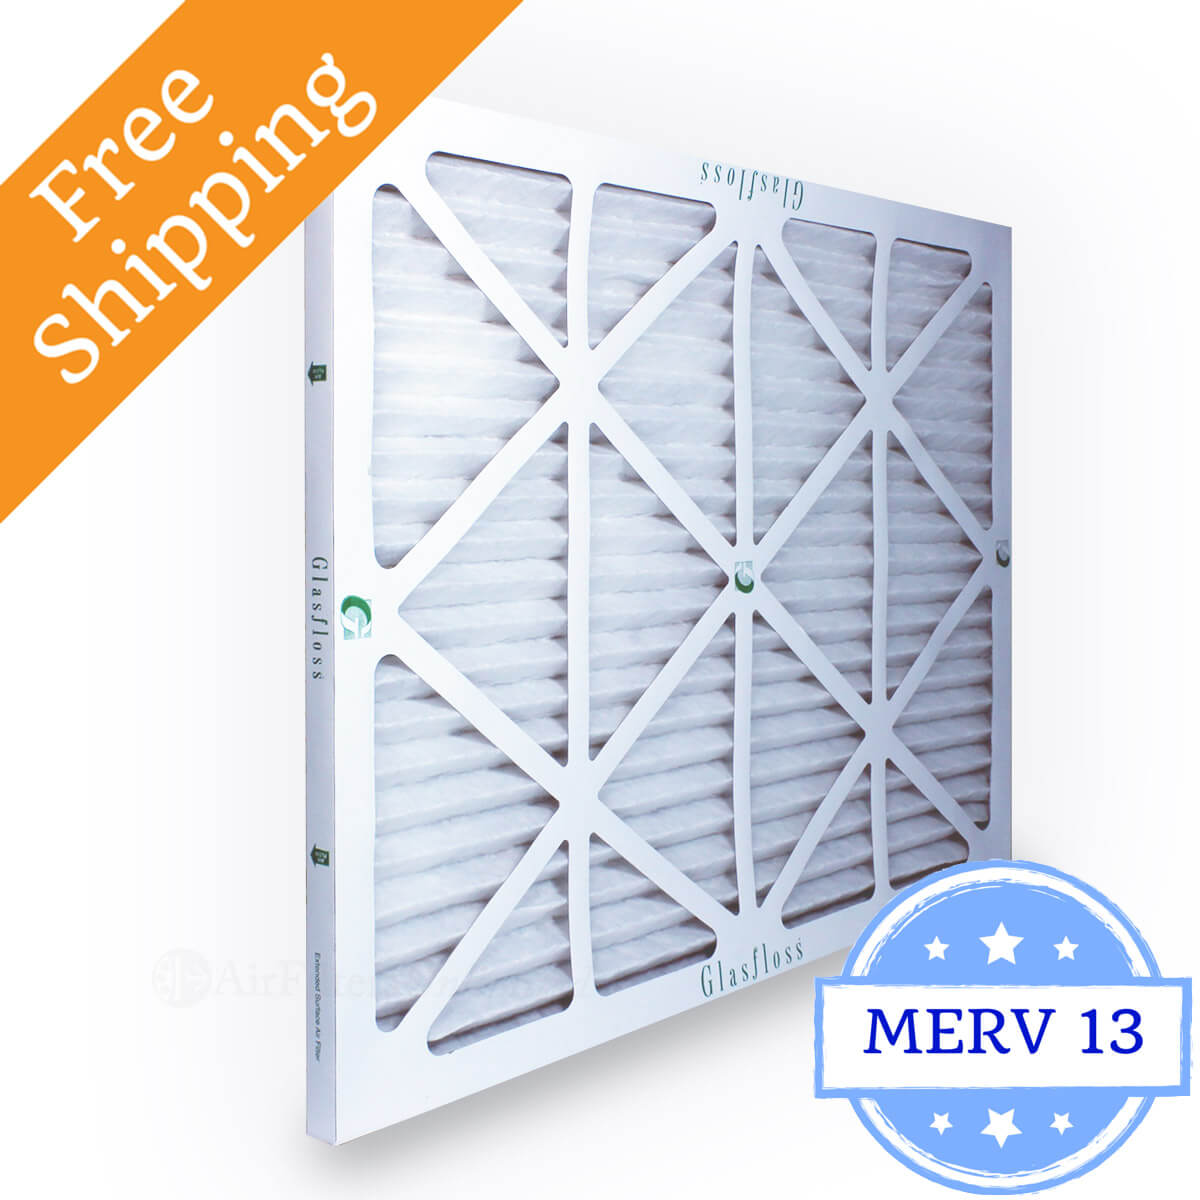 Glasfloss 18x20x1 Air Filter MR-13 Series